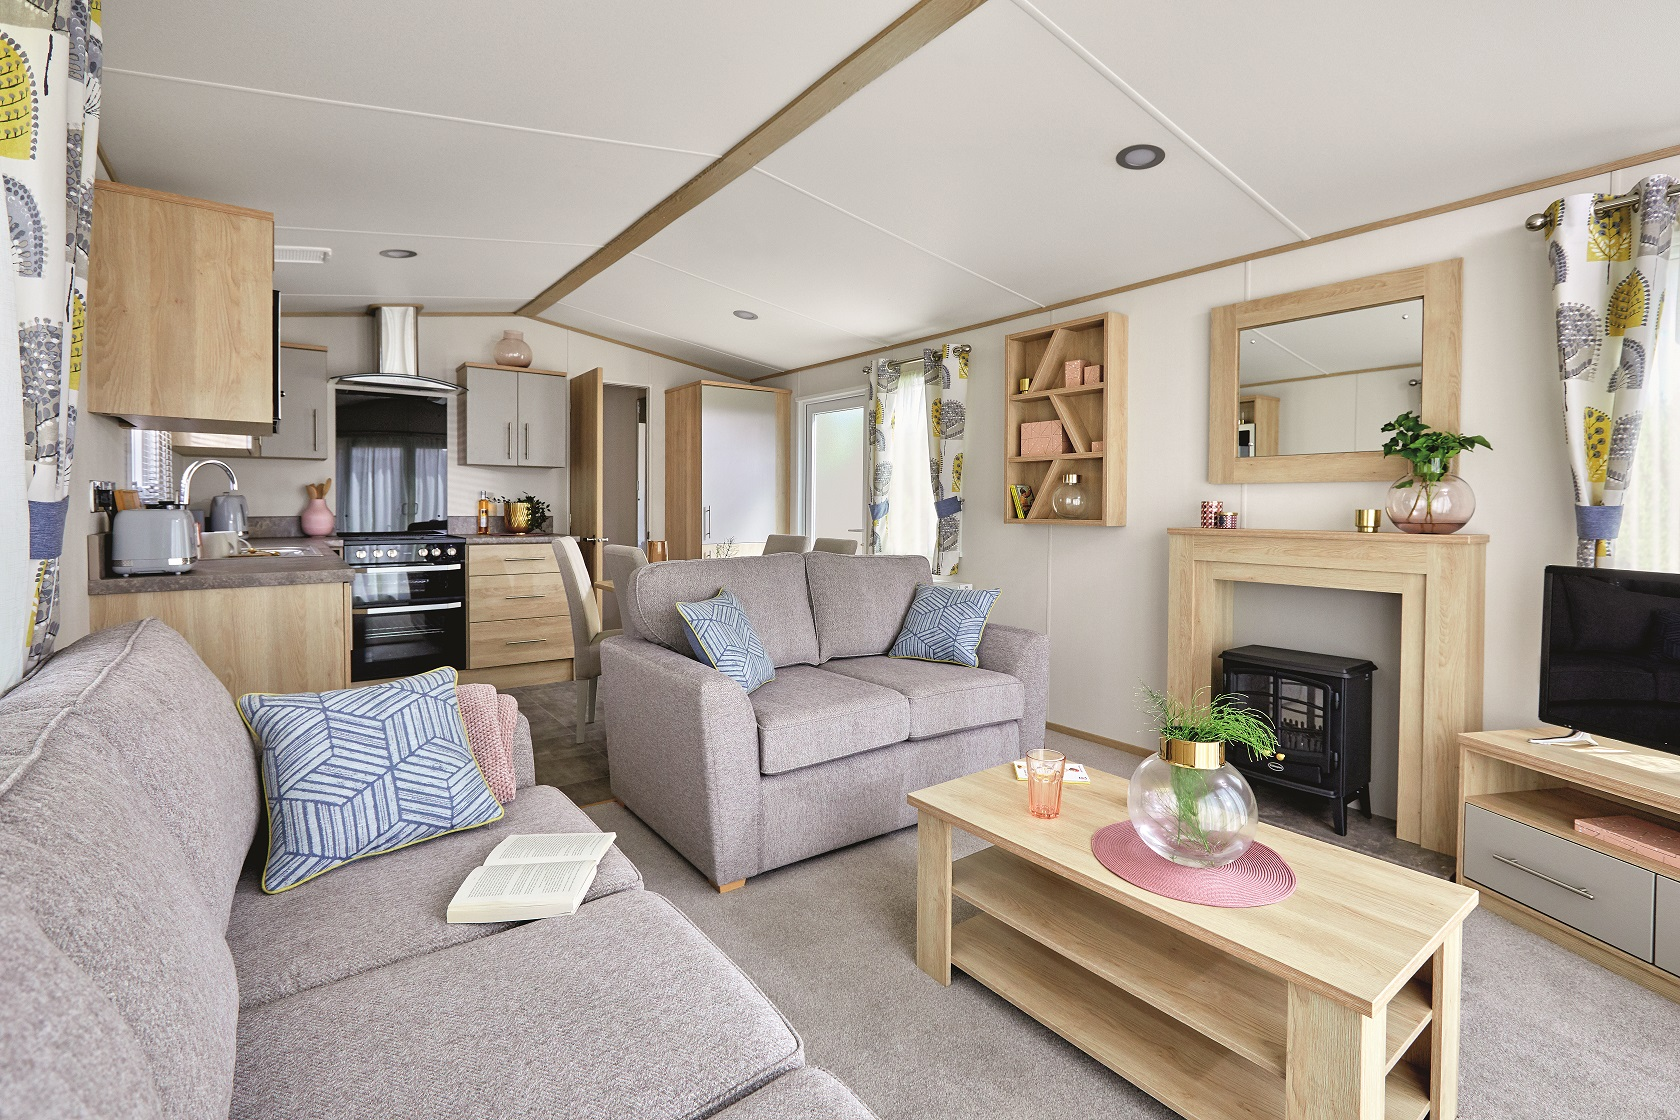 ABI Beverley: New Static Caravans and Holiday Homes for Sale, Langley Moor, Durham Large Image 2